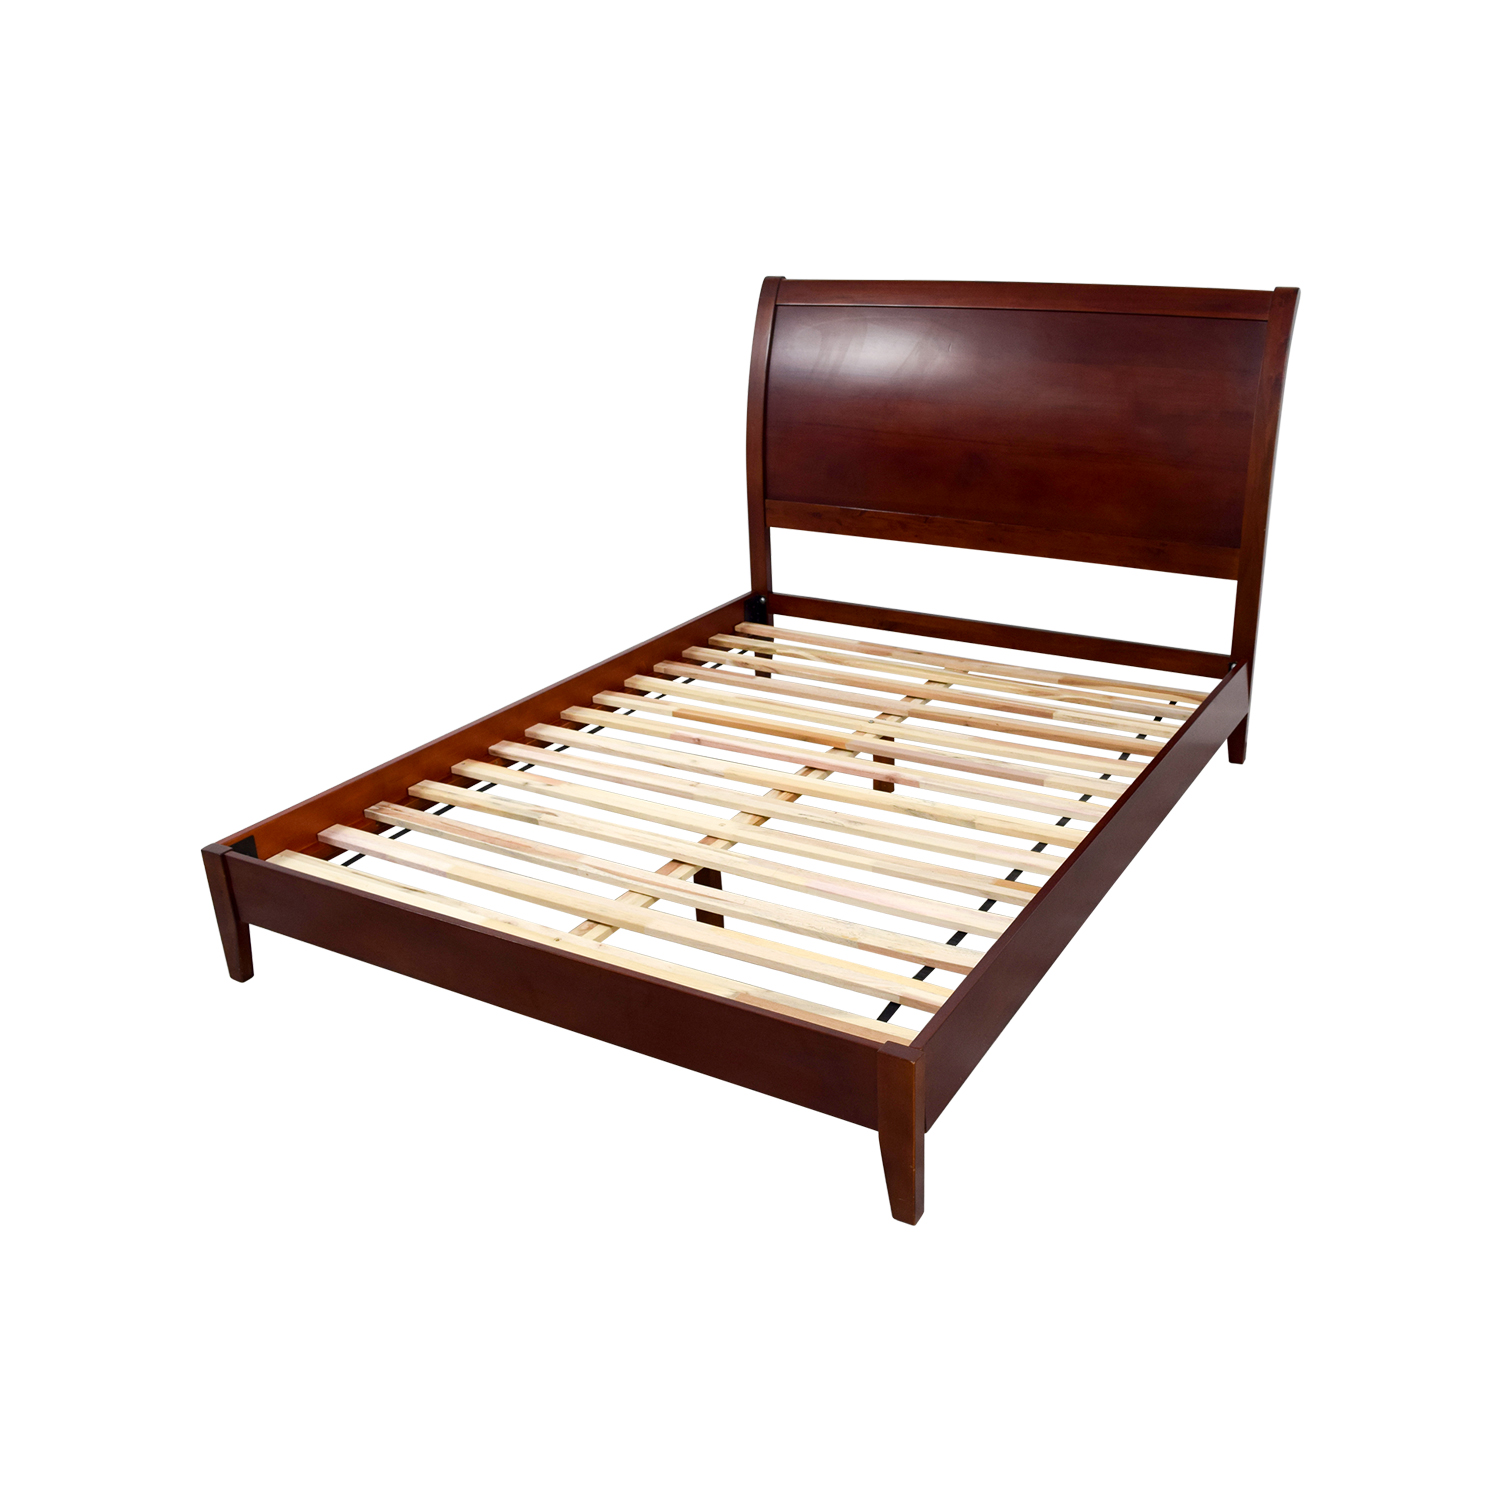 70 Off Sleepy 39 S Sleepy 39 S Queen Wooden Bed Frame Beds